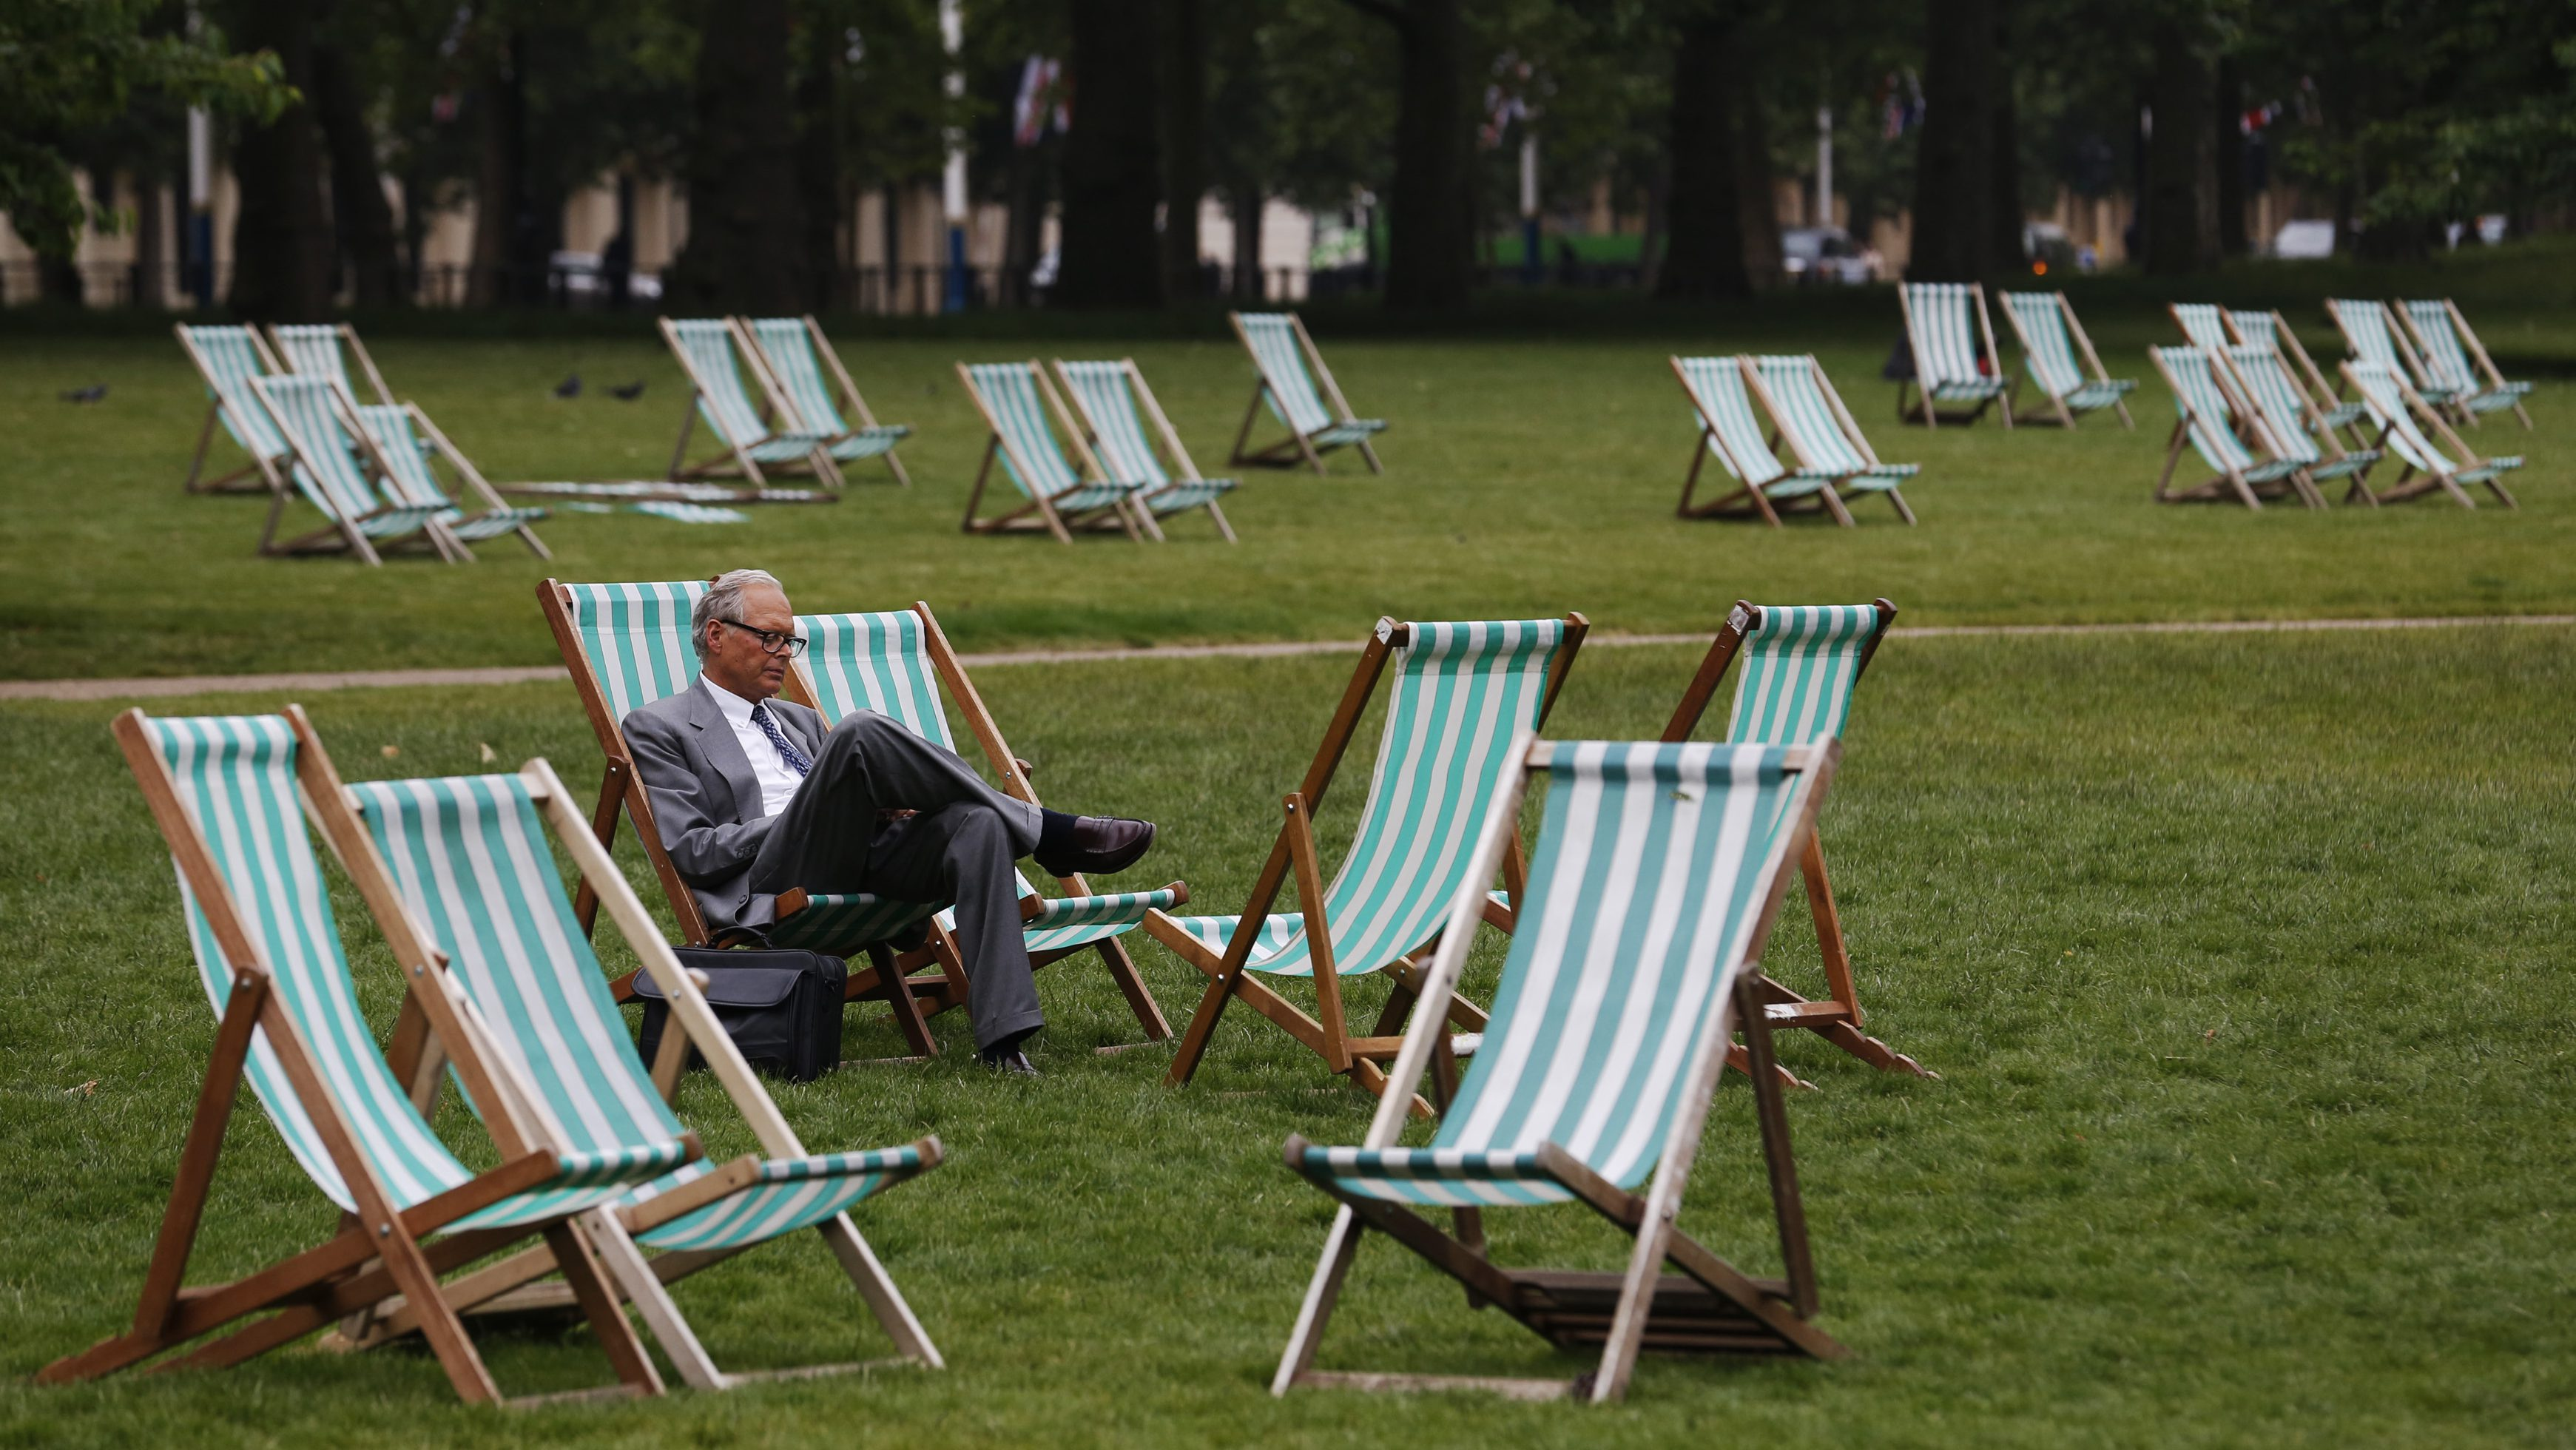 A man sits among empty deck chairs during the unseasonably poor summer weather, in St James's Park in London June 18, 2013. REUTERS/Luke MacGregor (BRITAIN - Tags: ENVIRONMENT SOCIETY TRAVEL) - RTX10S6X